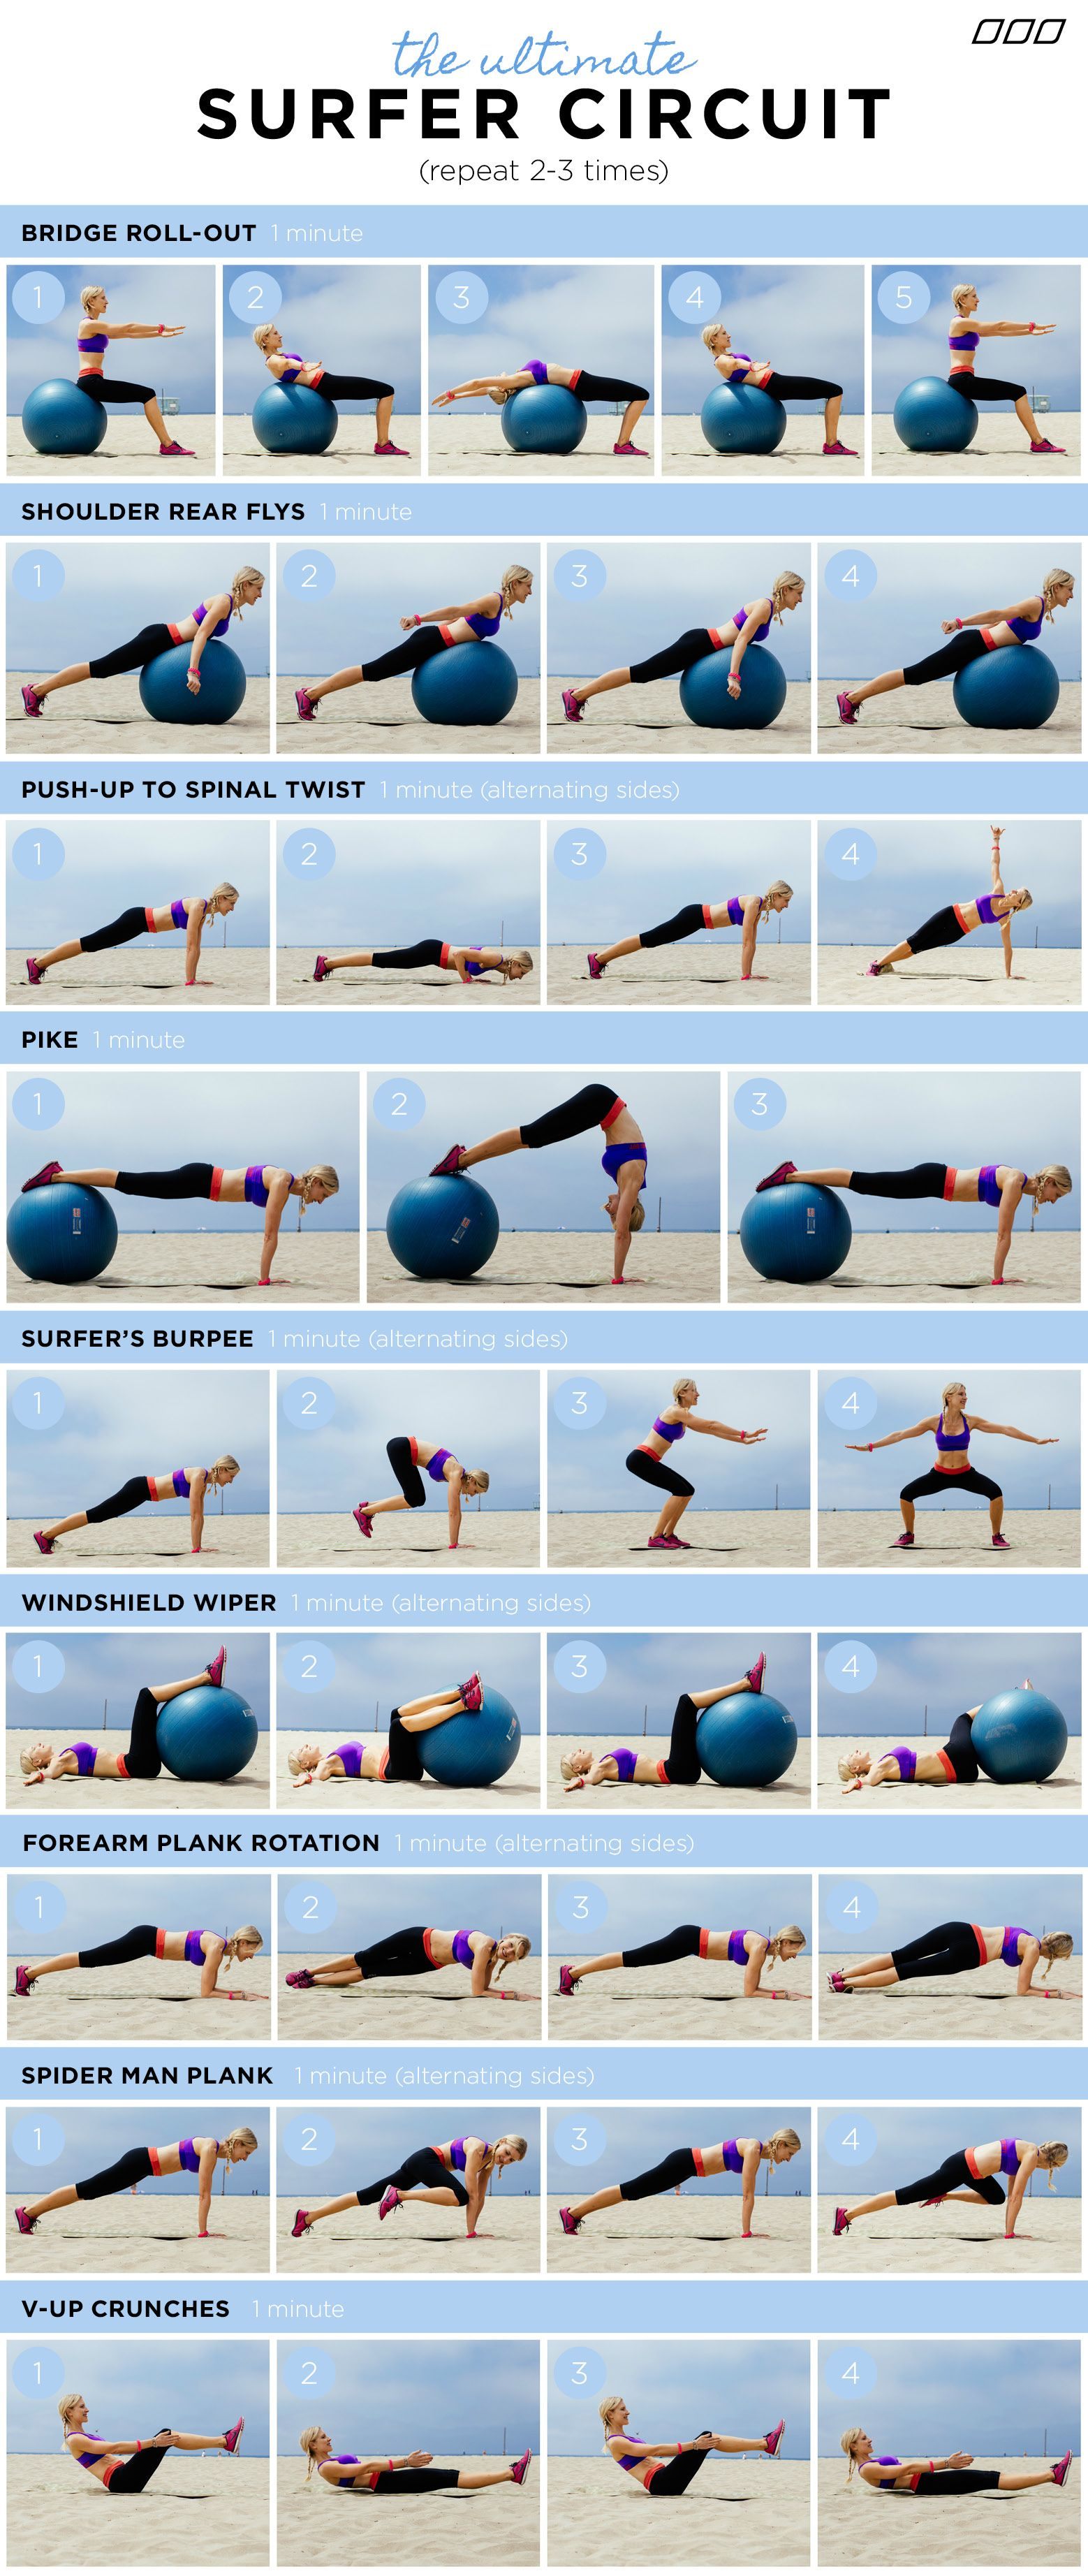 Surfer workout